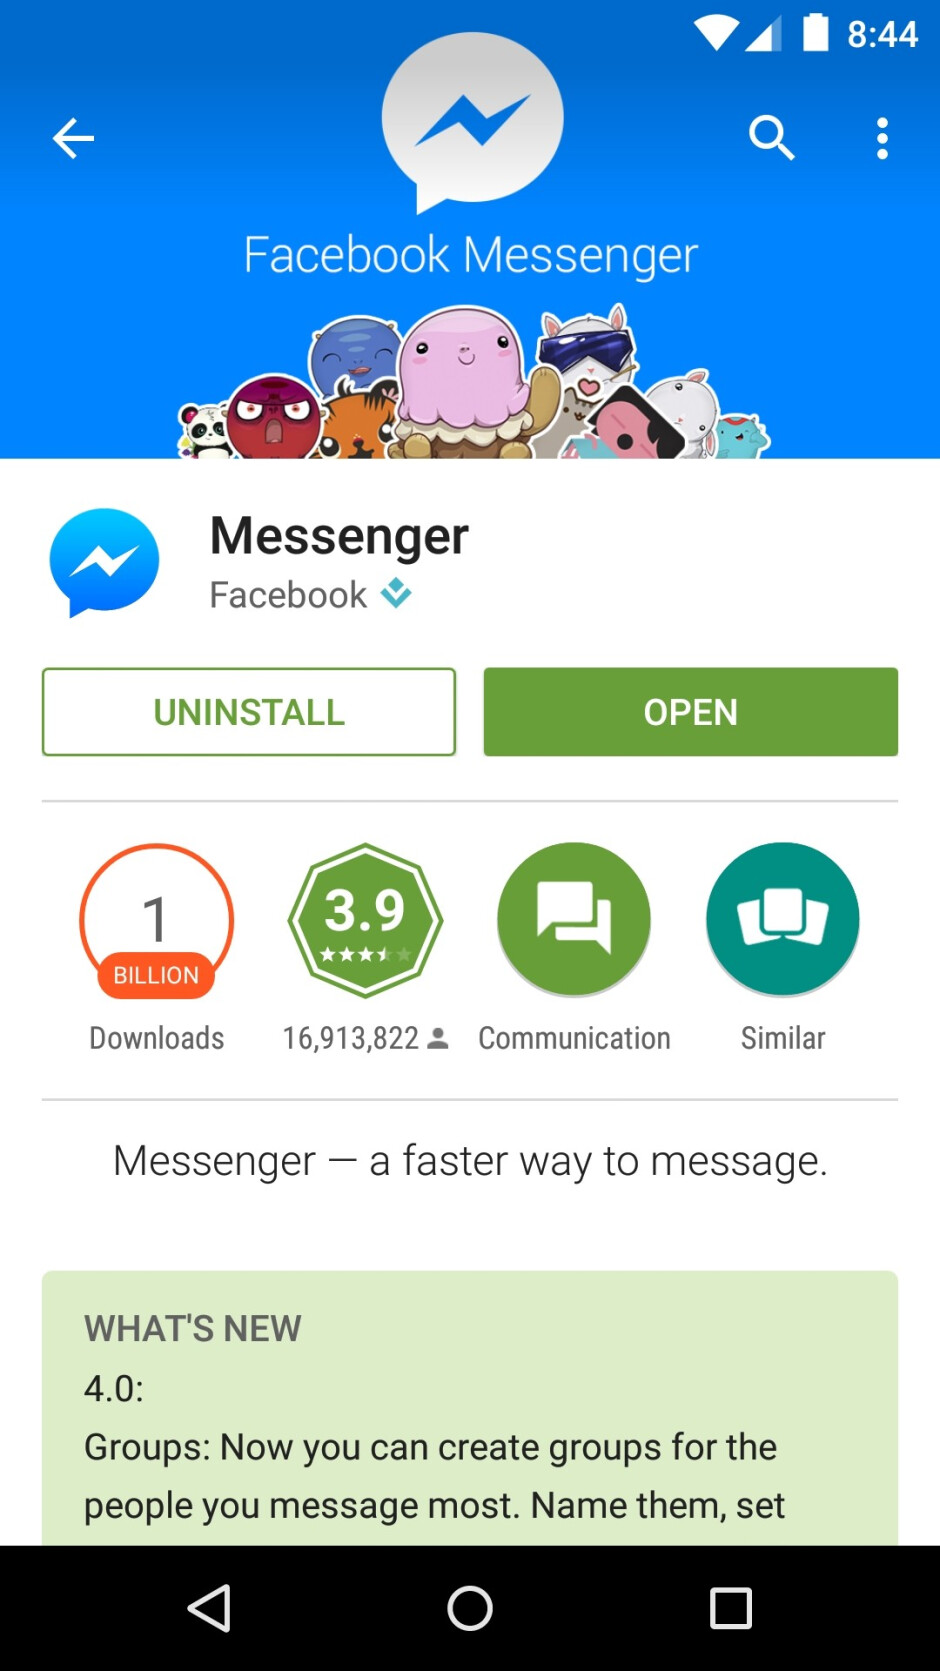 Facebook Messenger for Android hits 1 billion downloads